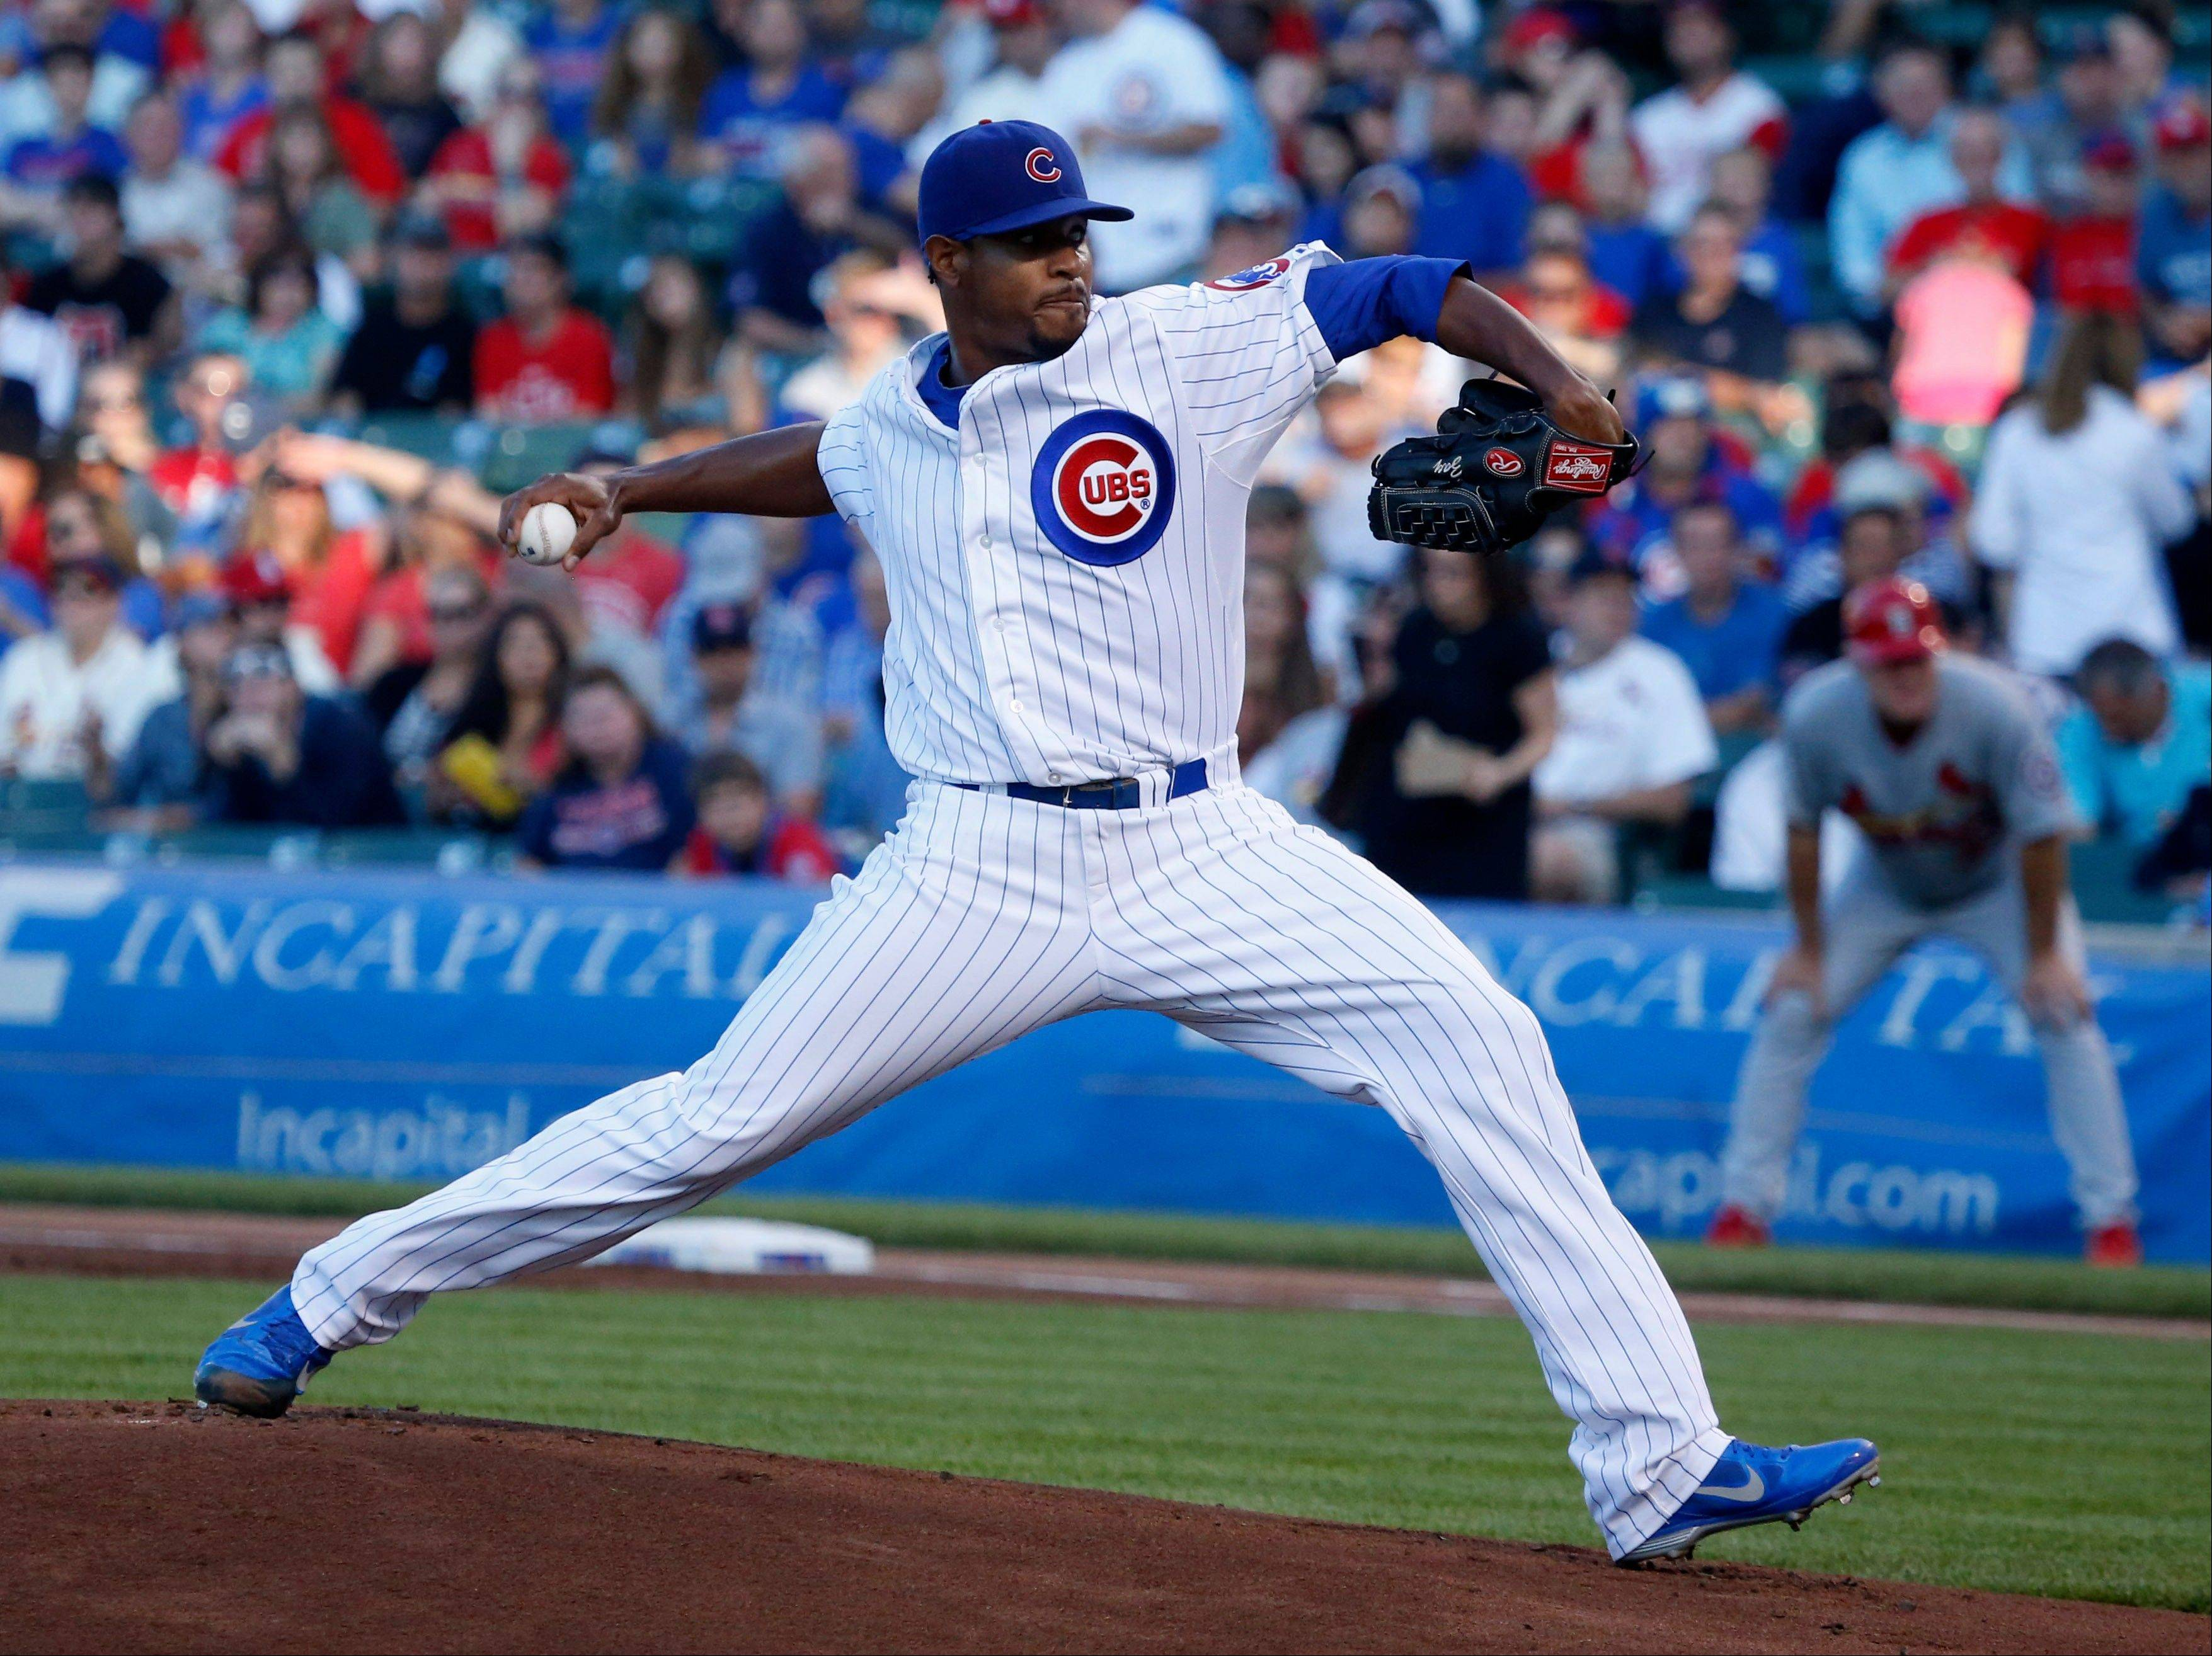 Cubs starting pitcher Edwin Jackson earned his third straight victory by shutting down the Cardinals on Thursday night.